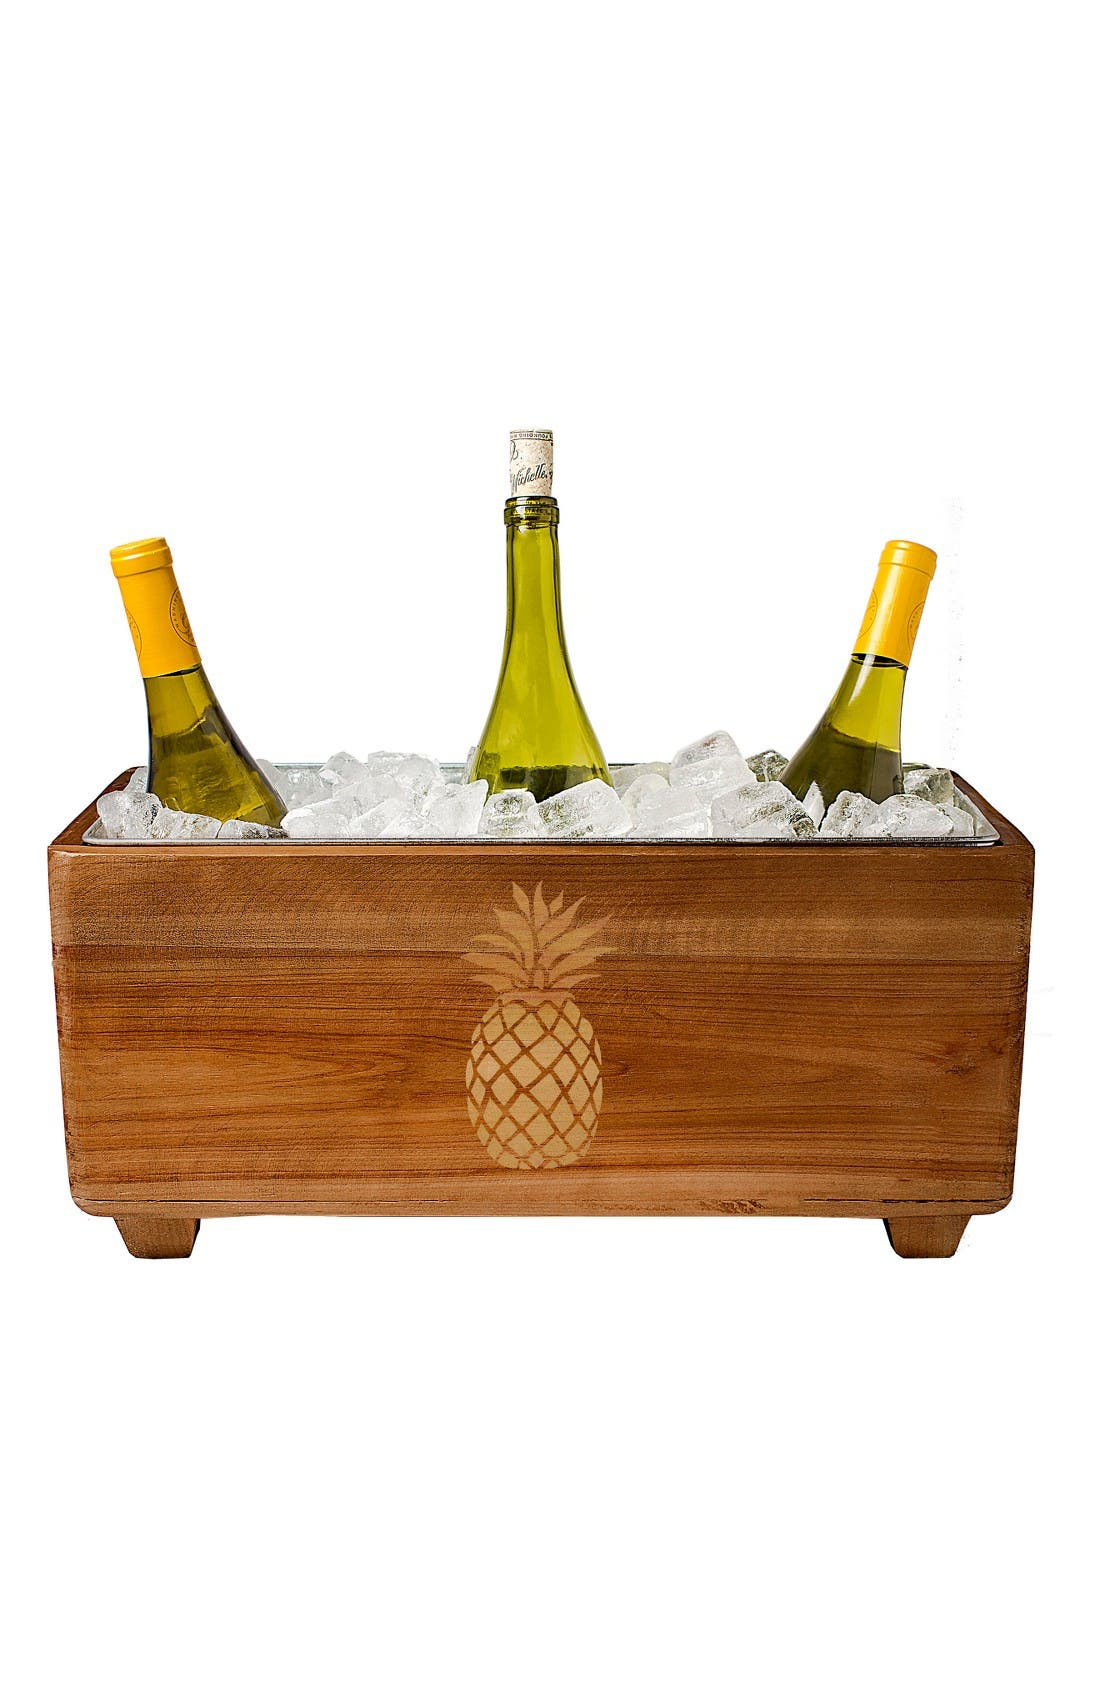 Main Image - Cathy's Concepts Wooden Wine Trough